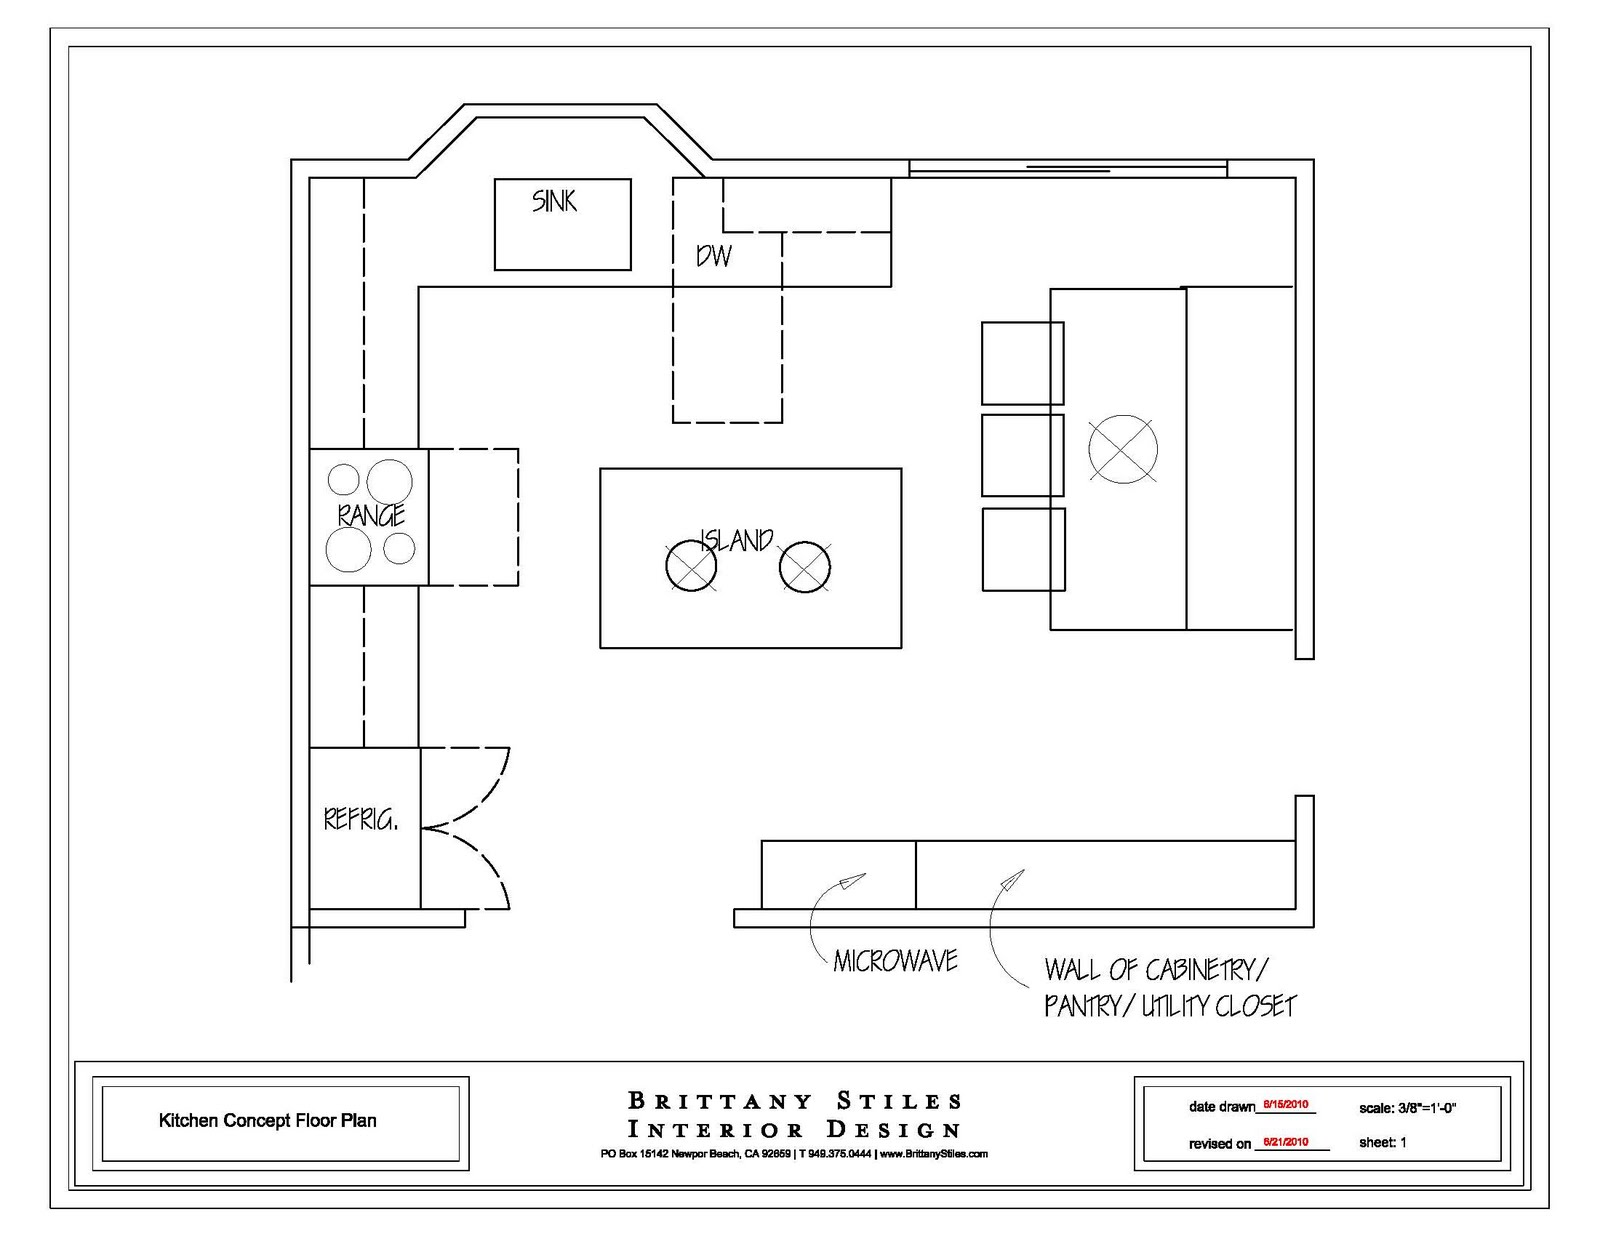 Restaurant Kitchen Layout Plans emejing kitchen layout plans pictures - amazing design ideas